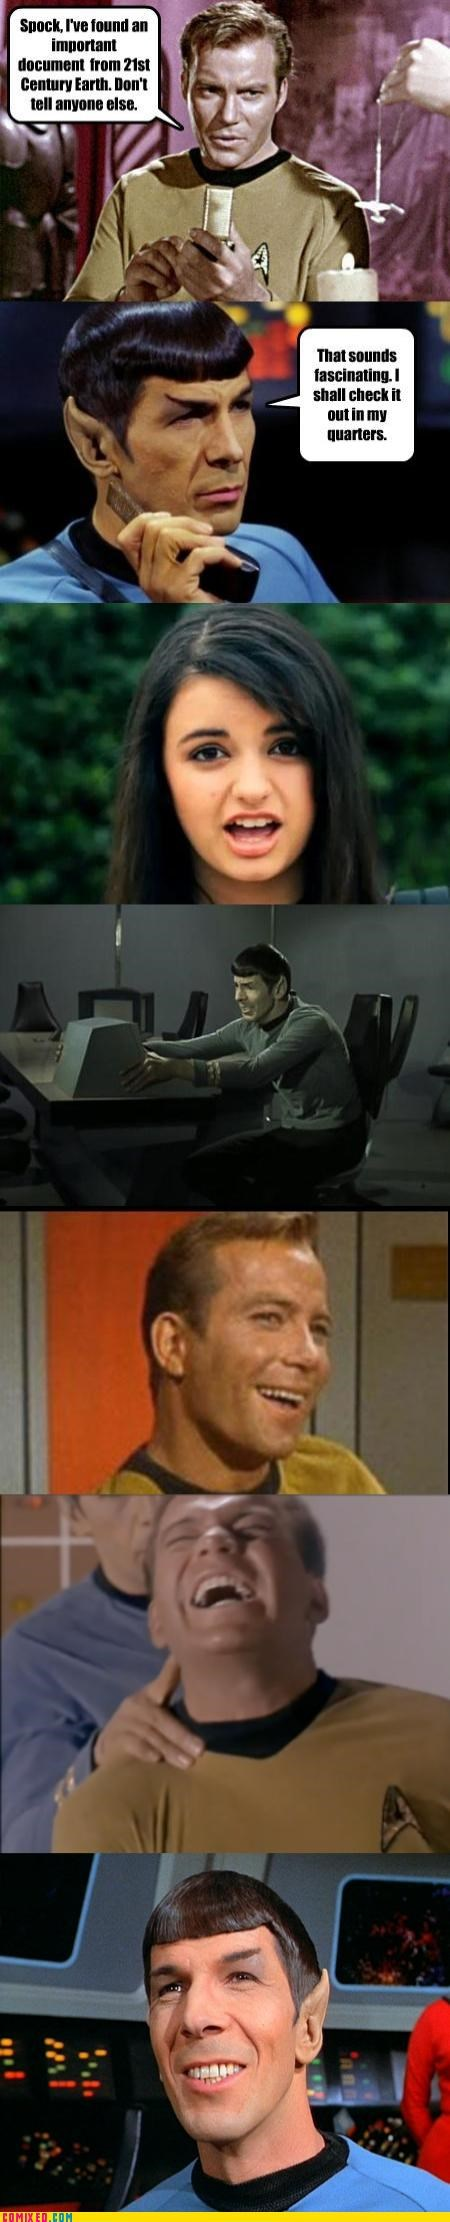 revenge,Star Trek,vulcan neck pinch